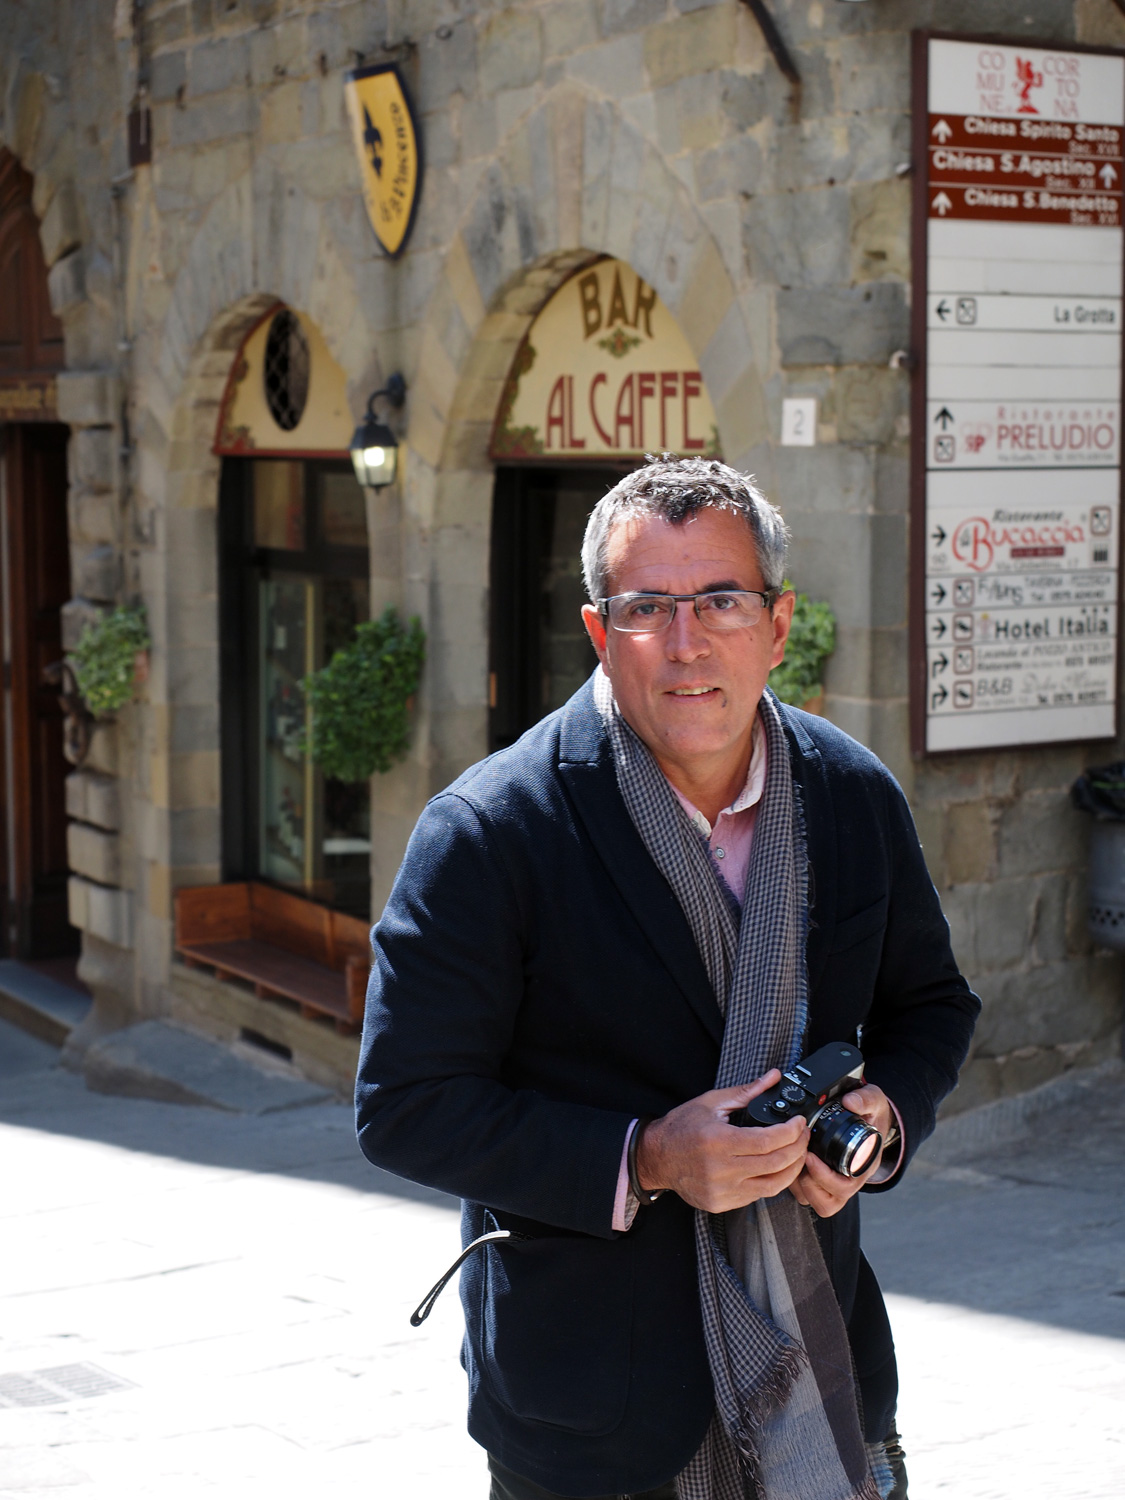 My hubby, falling in love with Cortona in the Tuscan region of Italy.